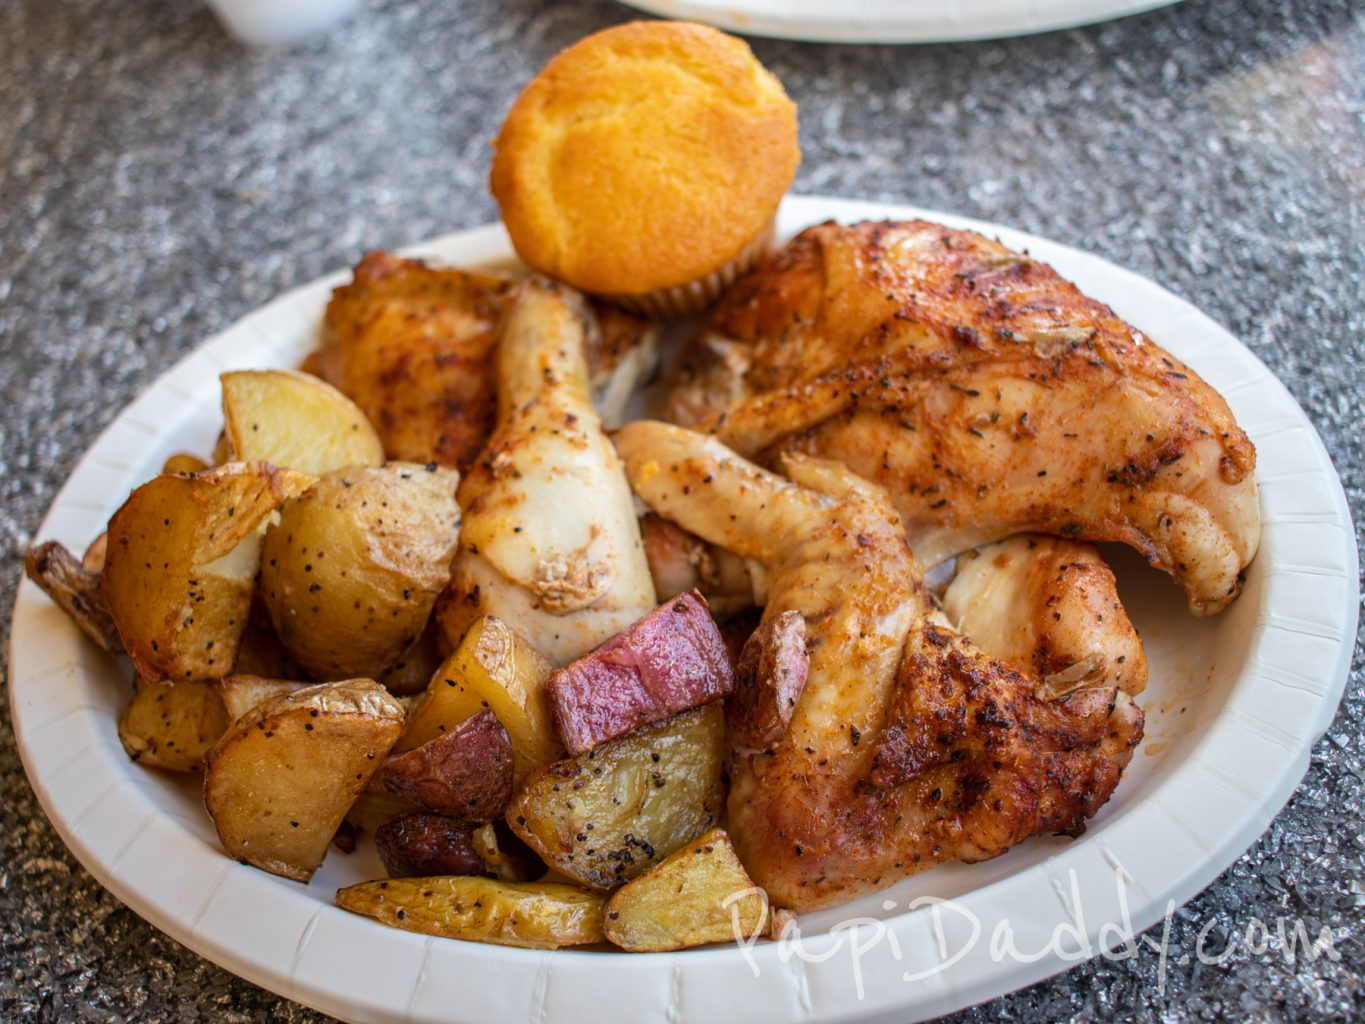 Knott's Berry Farm rotisserie chicken with roasted potatoes from Boardwalk BBQ.